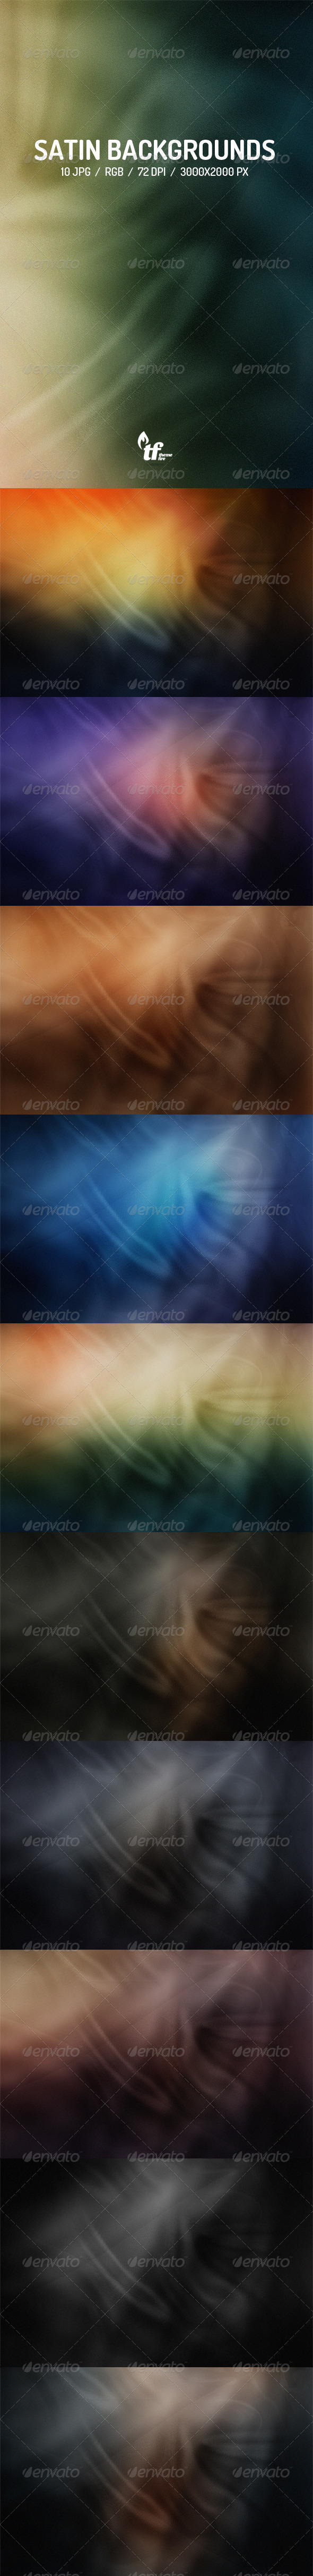 GraphicRiver Satin Backgrounds 7522669